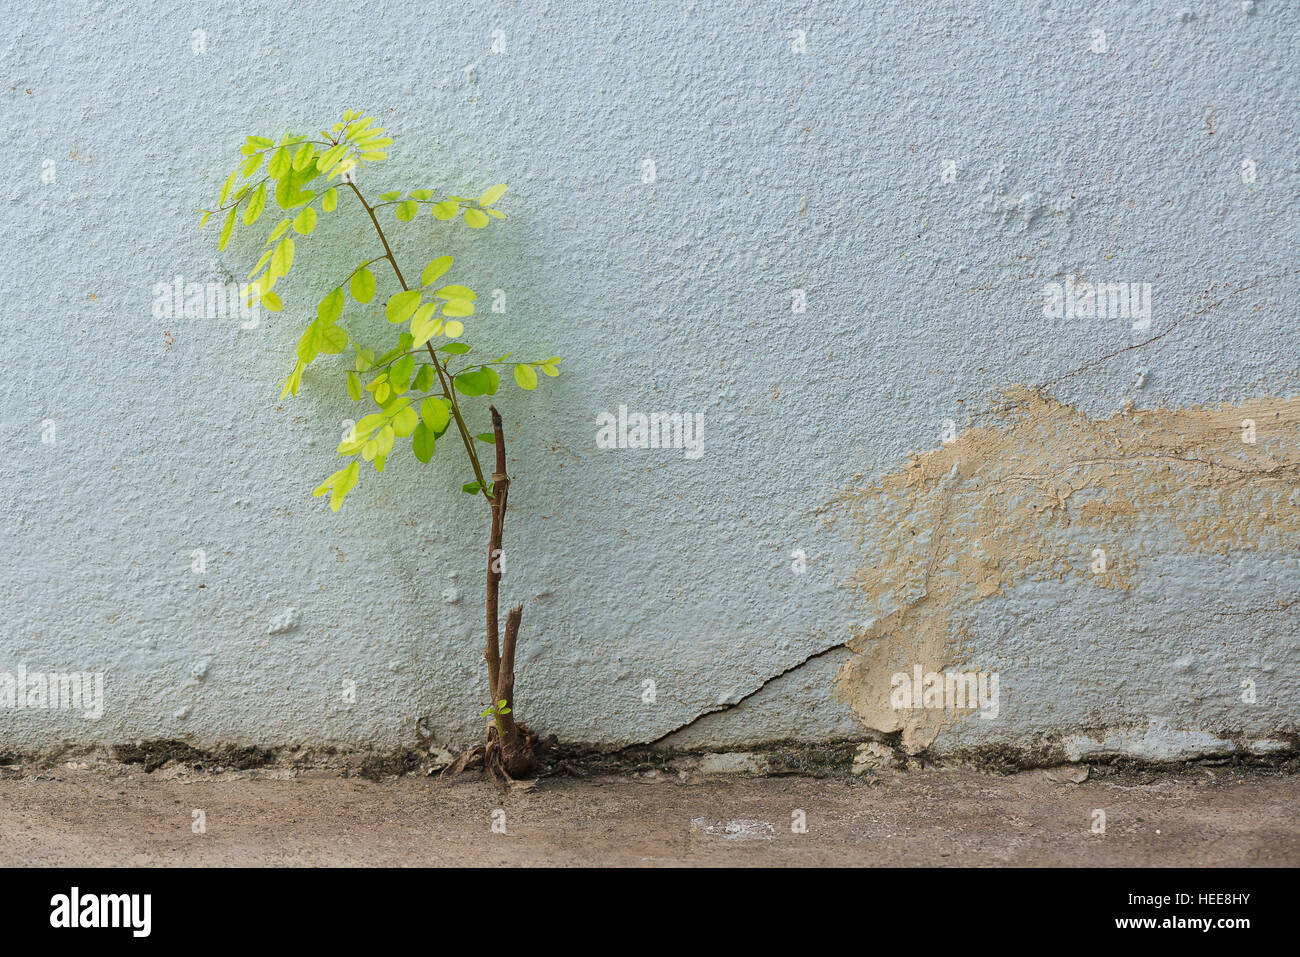 Small plant germinated and grown up from the cracked concrete wall background. - Stock Image